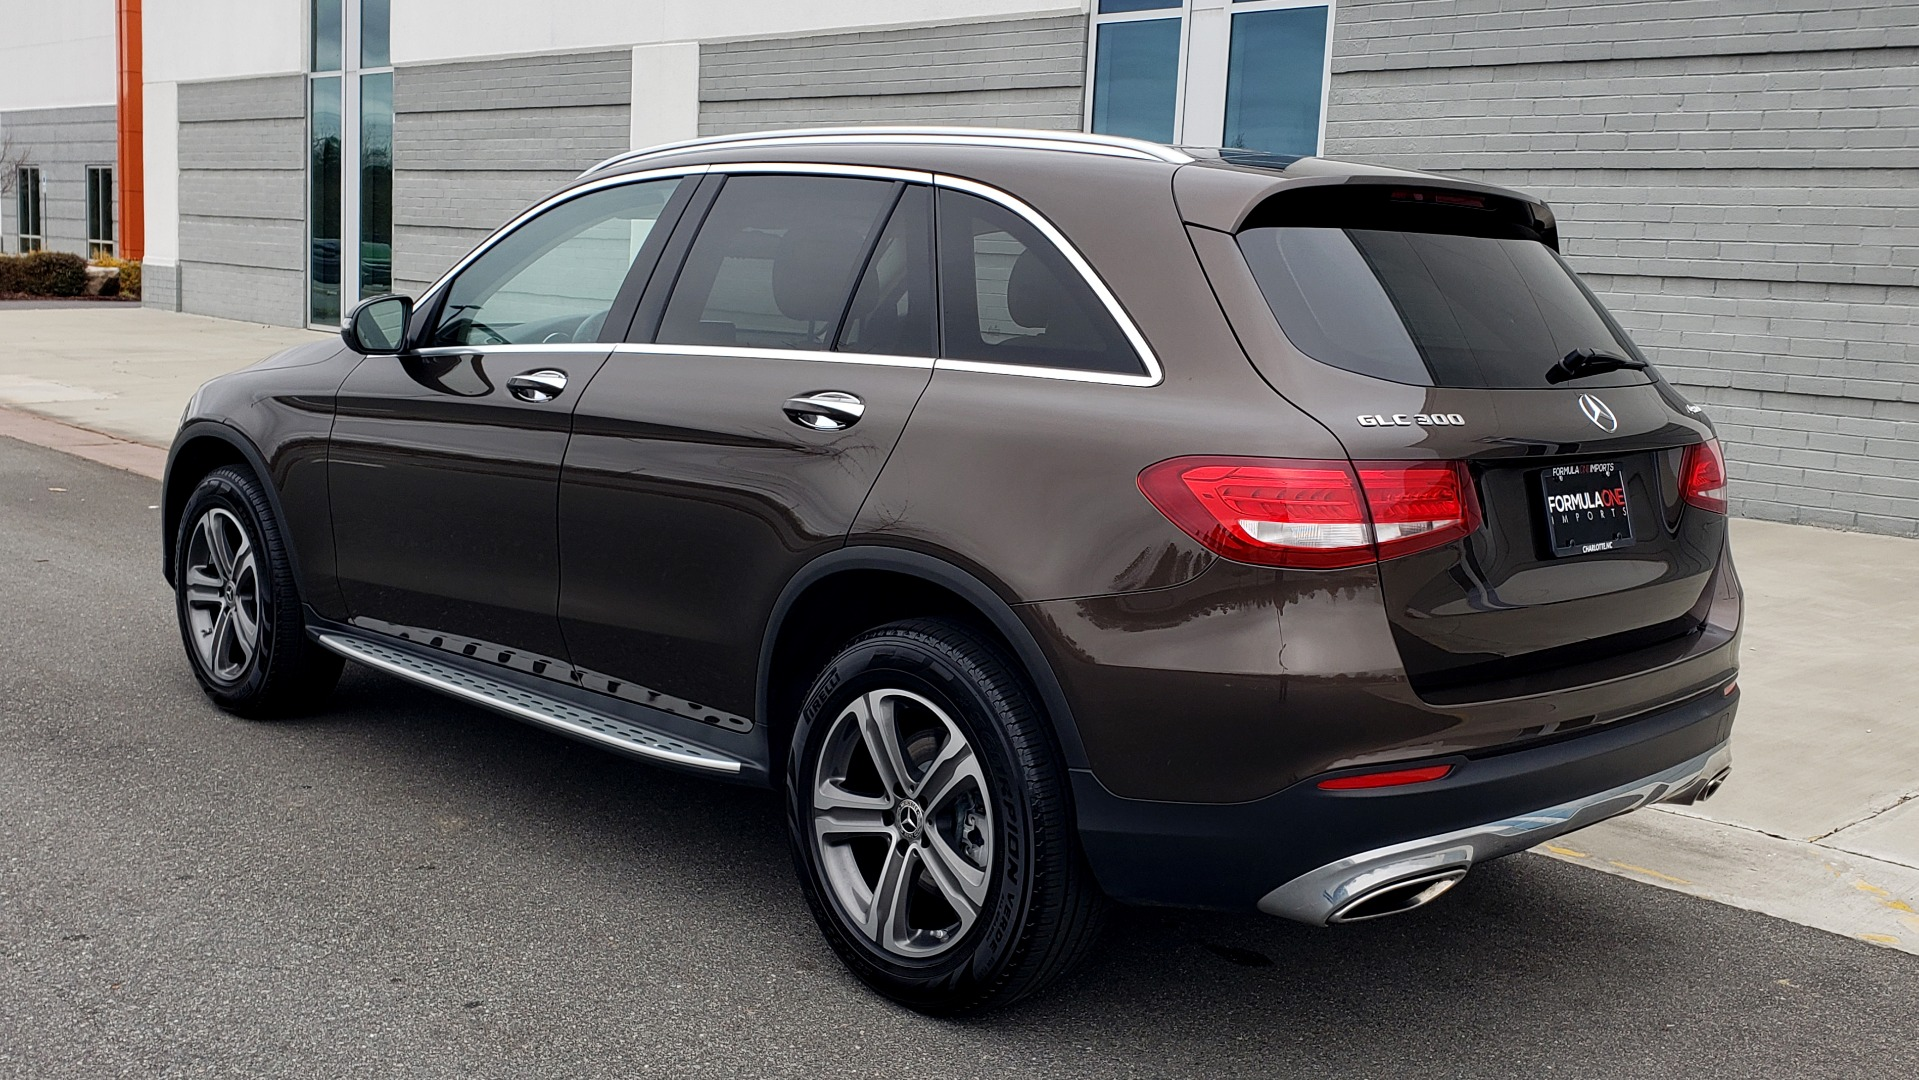 Used 2018 Mercedes-Benz GLC 300 4MATIC / PREM PKG / MULTIMEDIA / PANO-ROOF / BURMESTER for sale $33,995 at Formula Imports in Charlotte NC 28227 3